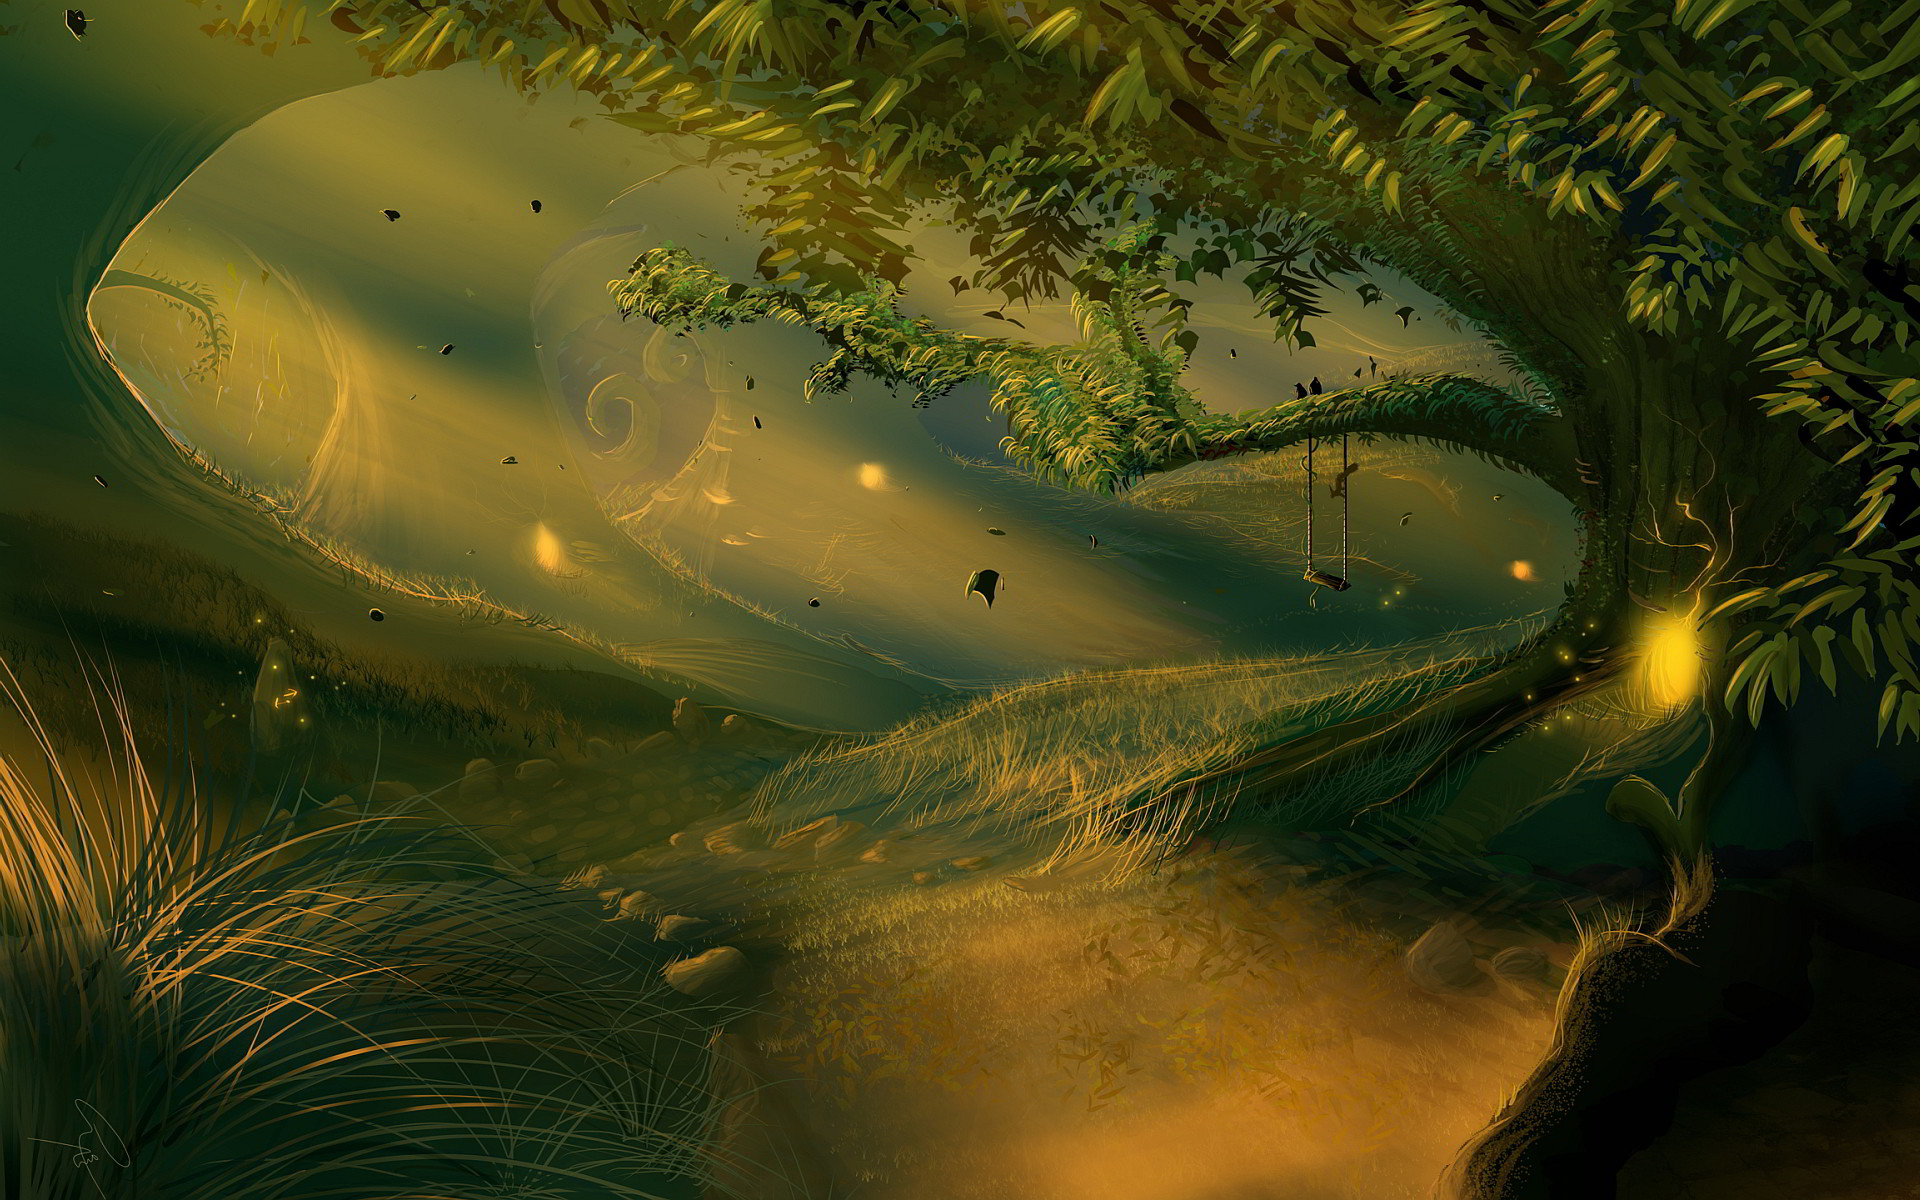 enchanted forest mural wallpaper   Fantasy enchanted forest Wallpapers  Pictures Photos Images